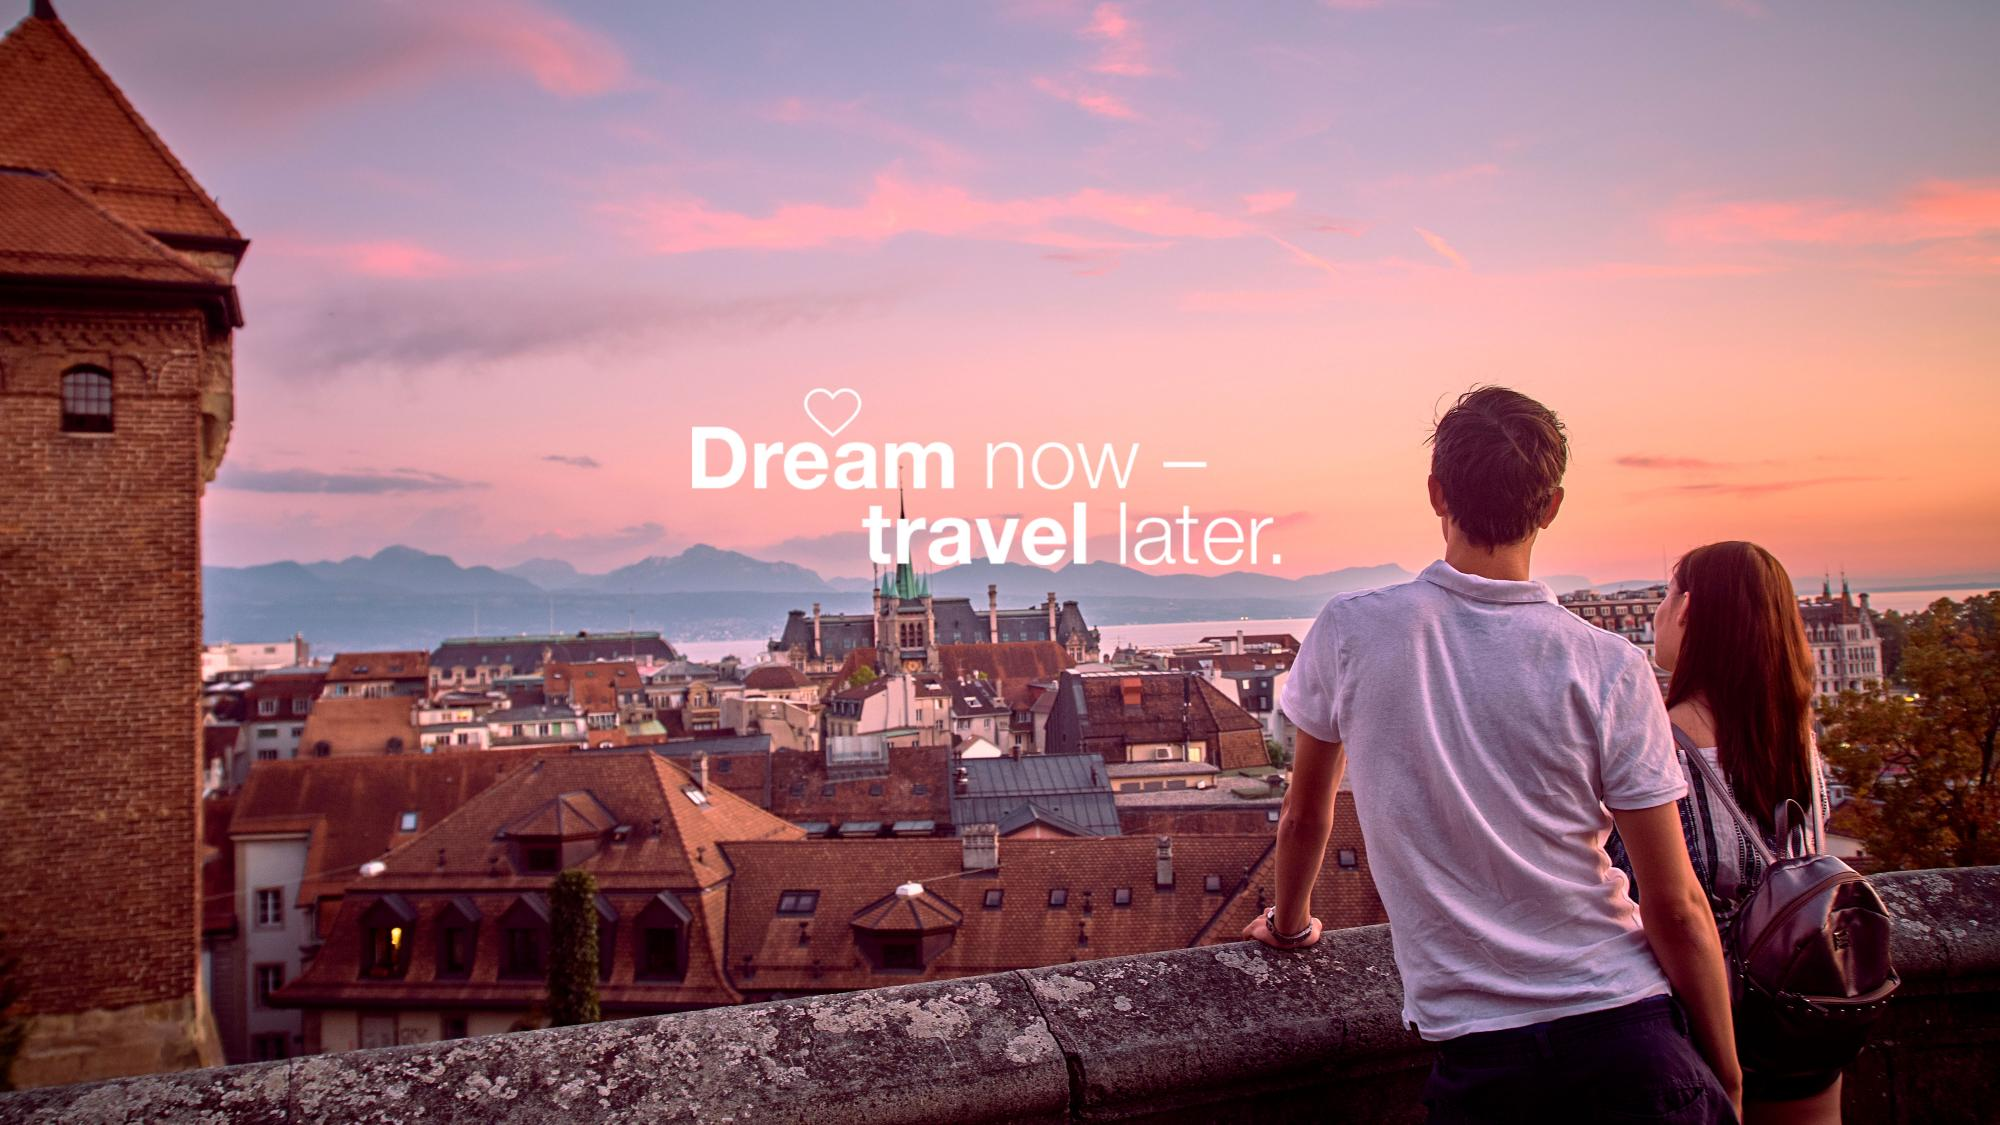 Dream now - homepage